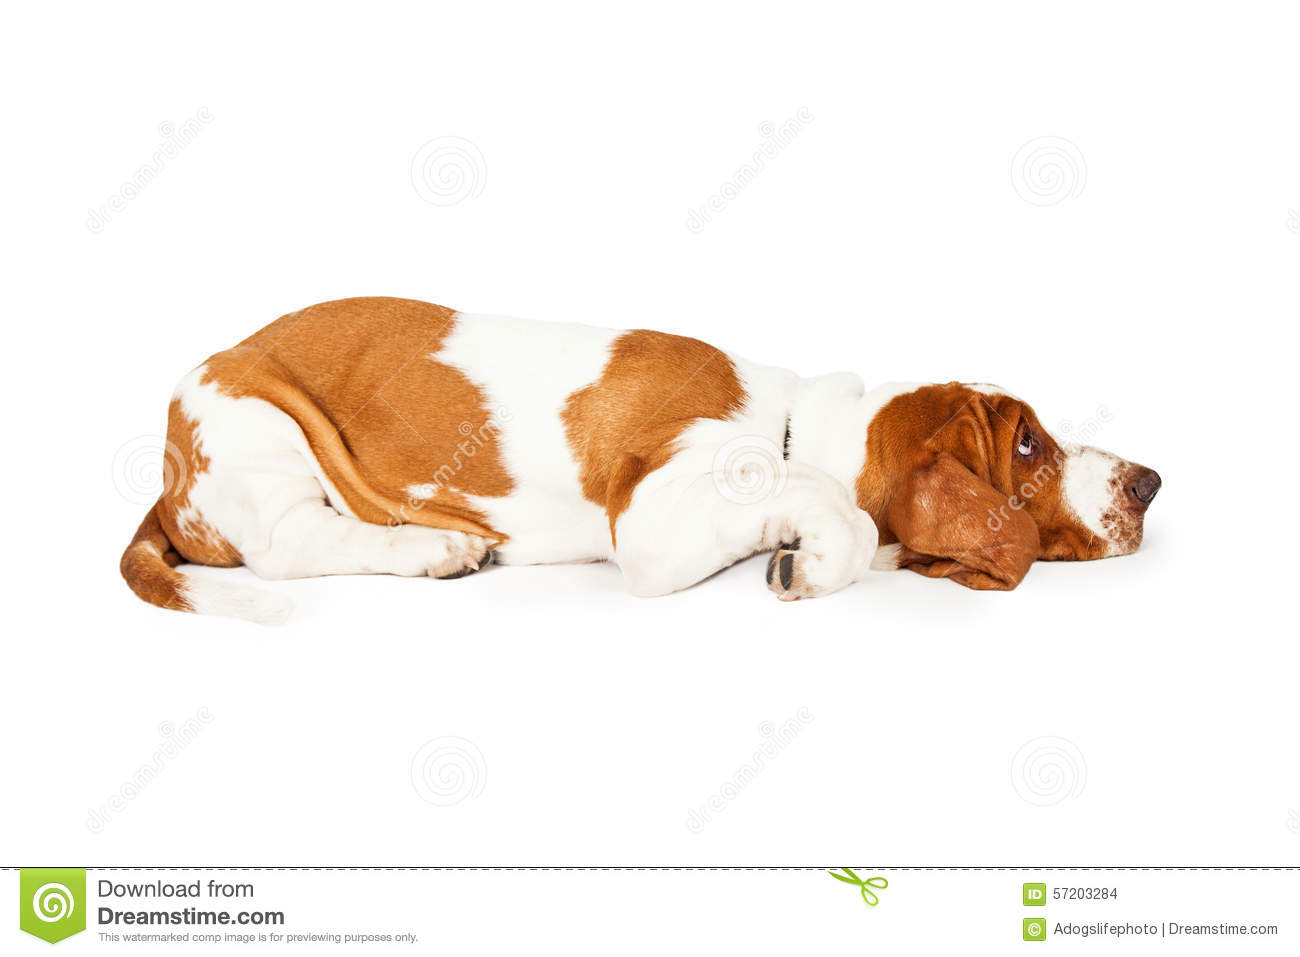 Profile of a Tired Basset Hound Puppy Laying